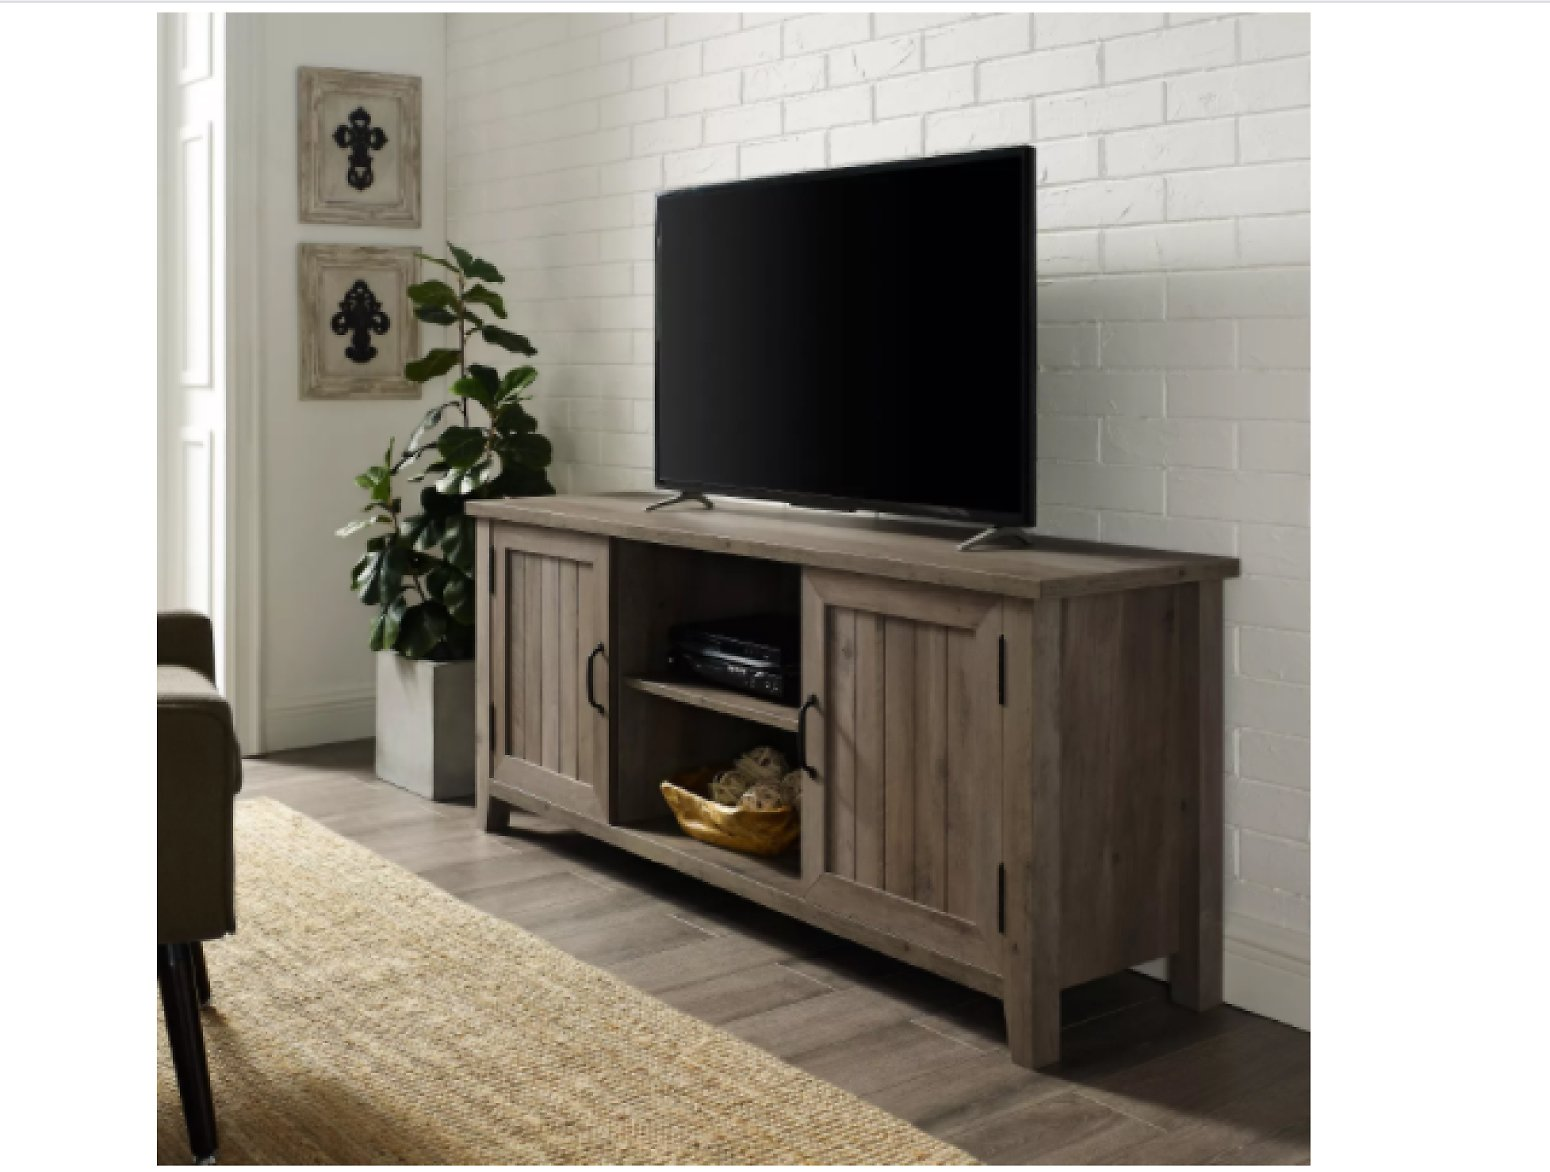 Modern Farmhouse TV Stand for TVs Up to 65